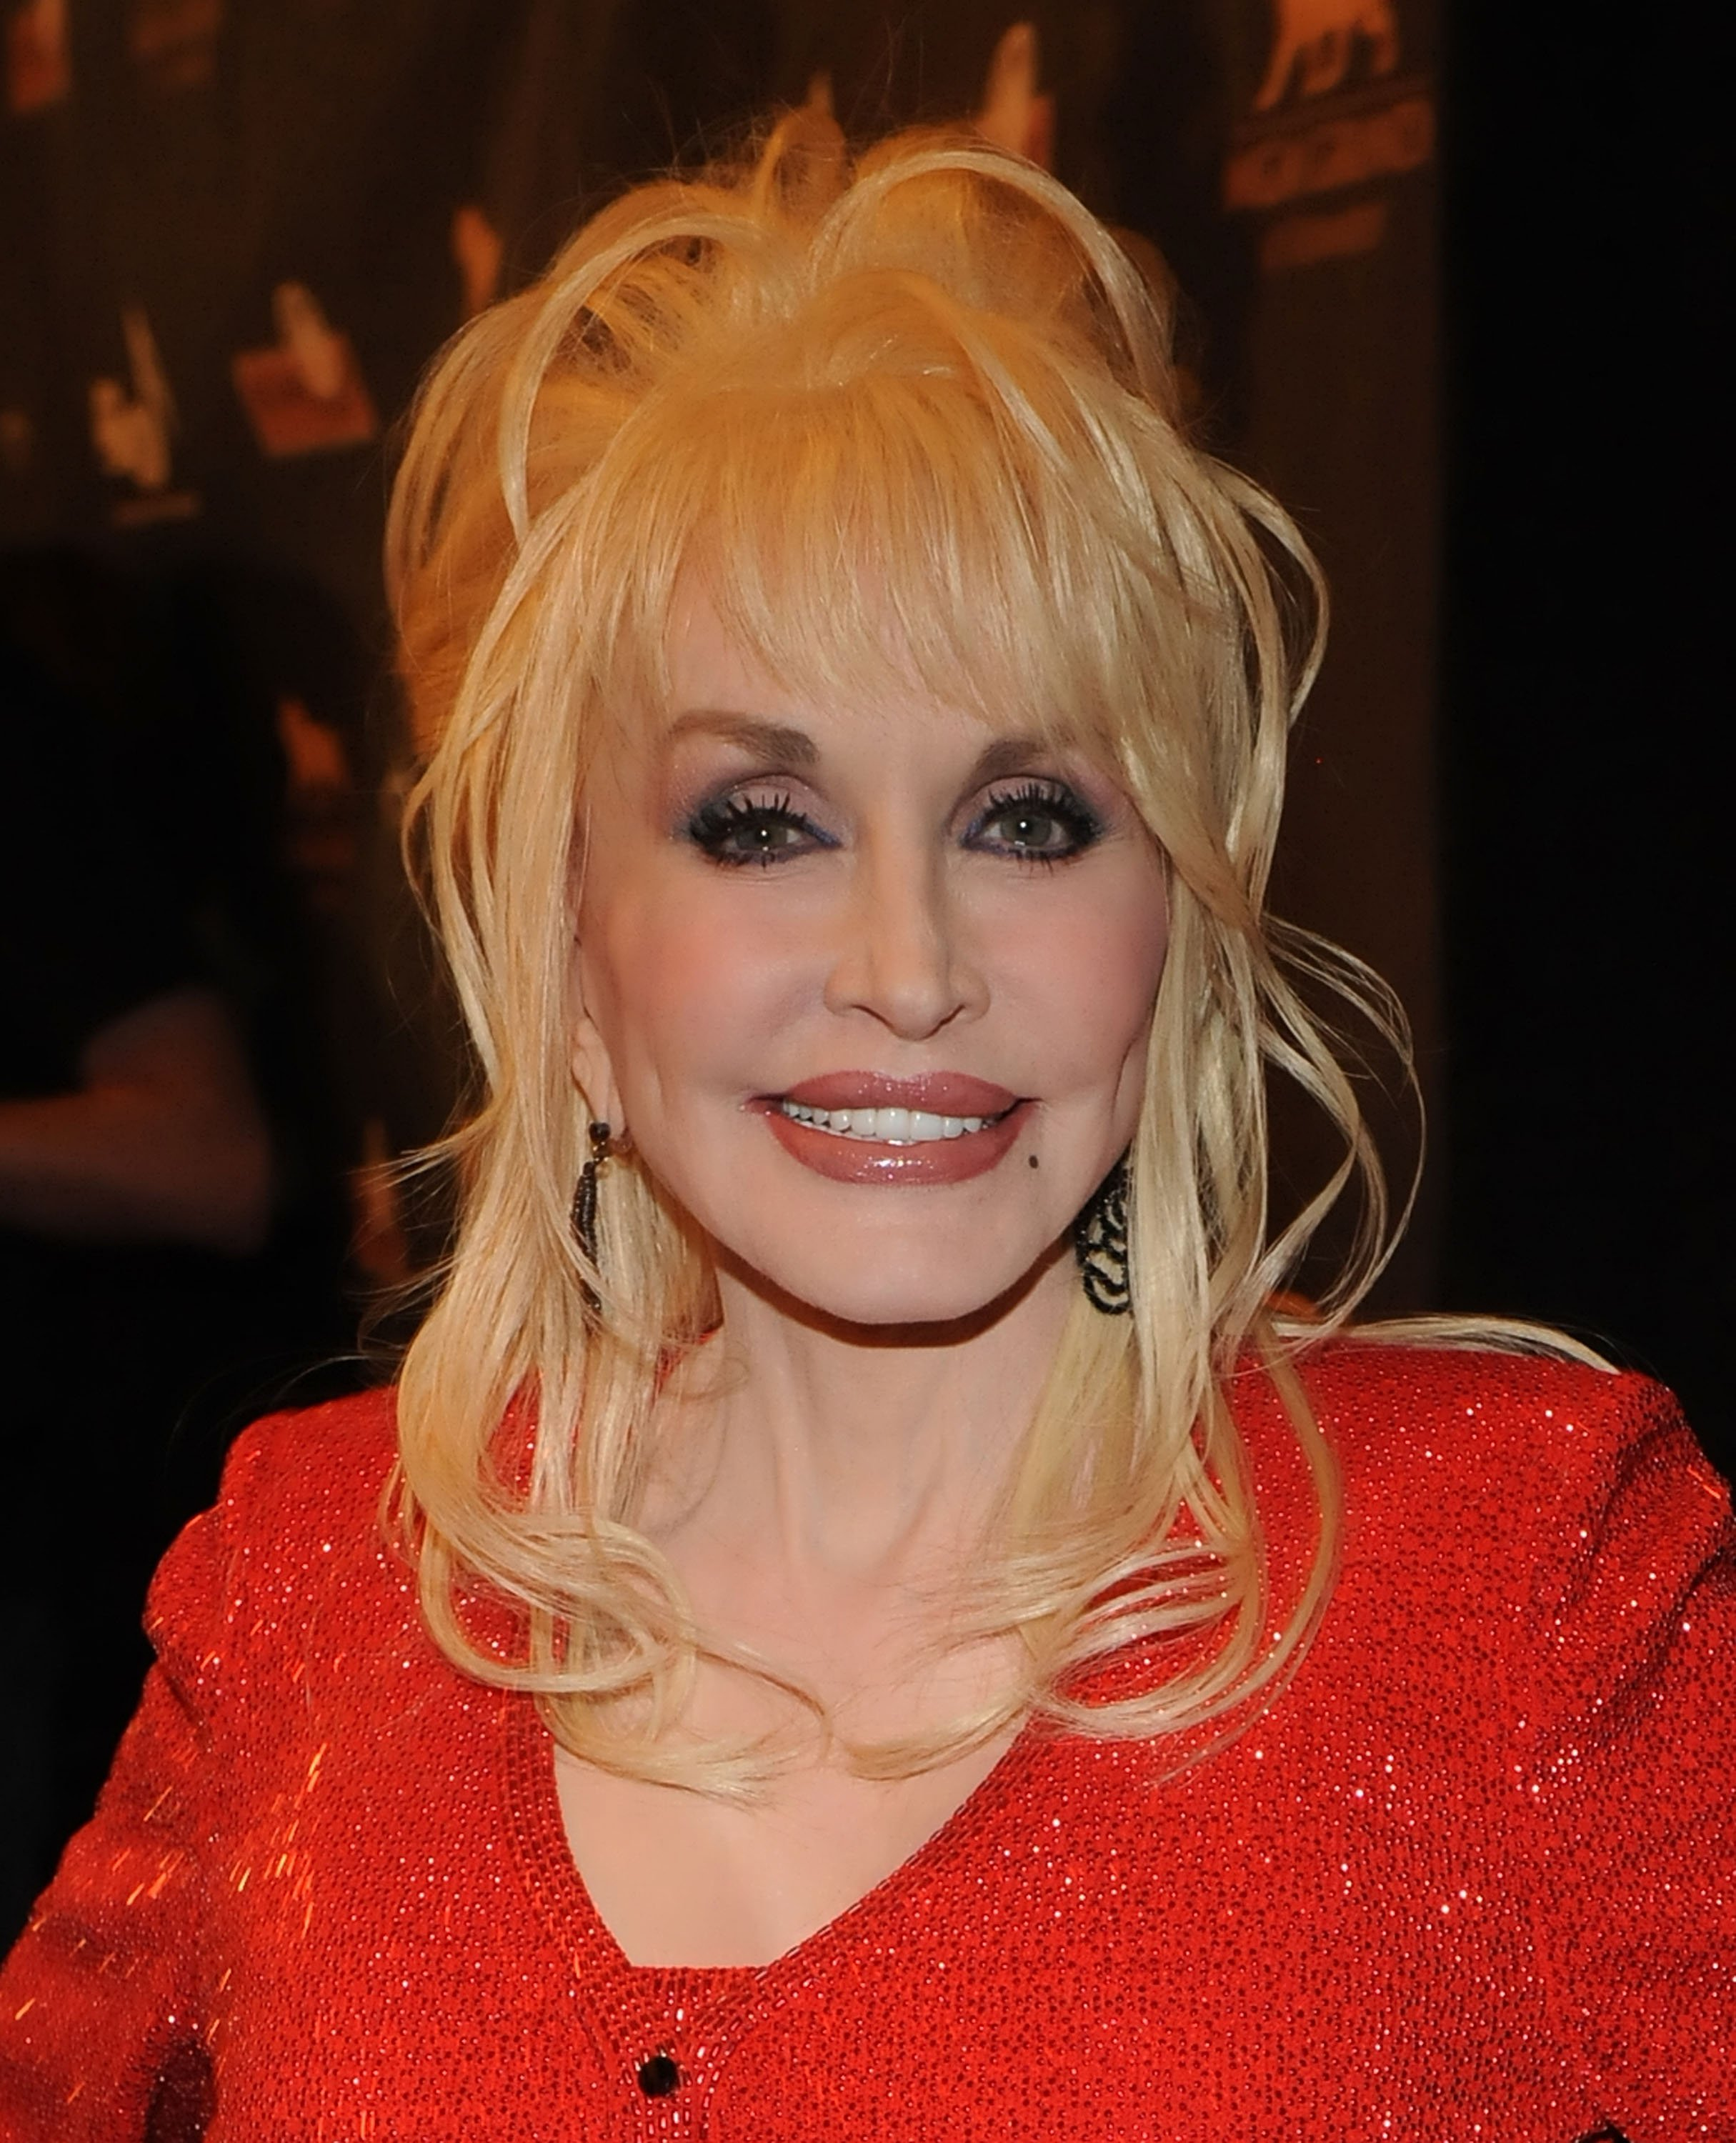 Image Source: Getty Images/Dolly smiling for the camera